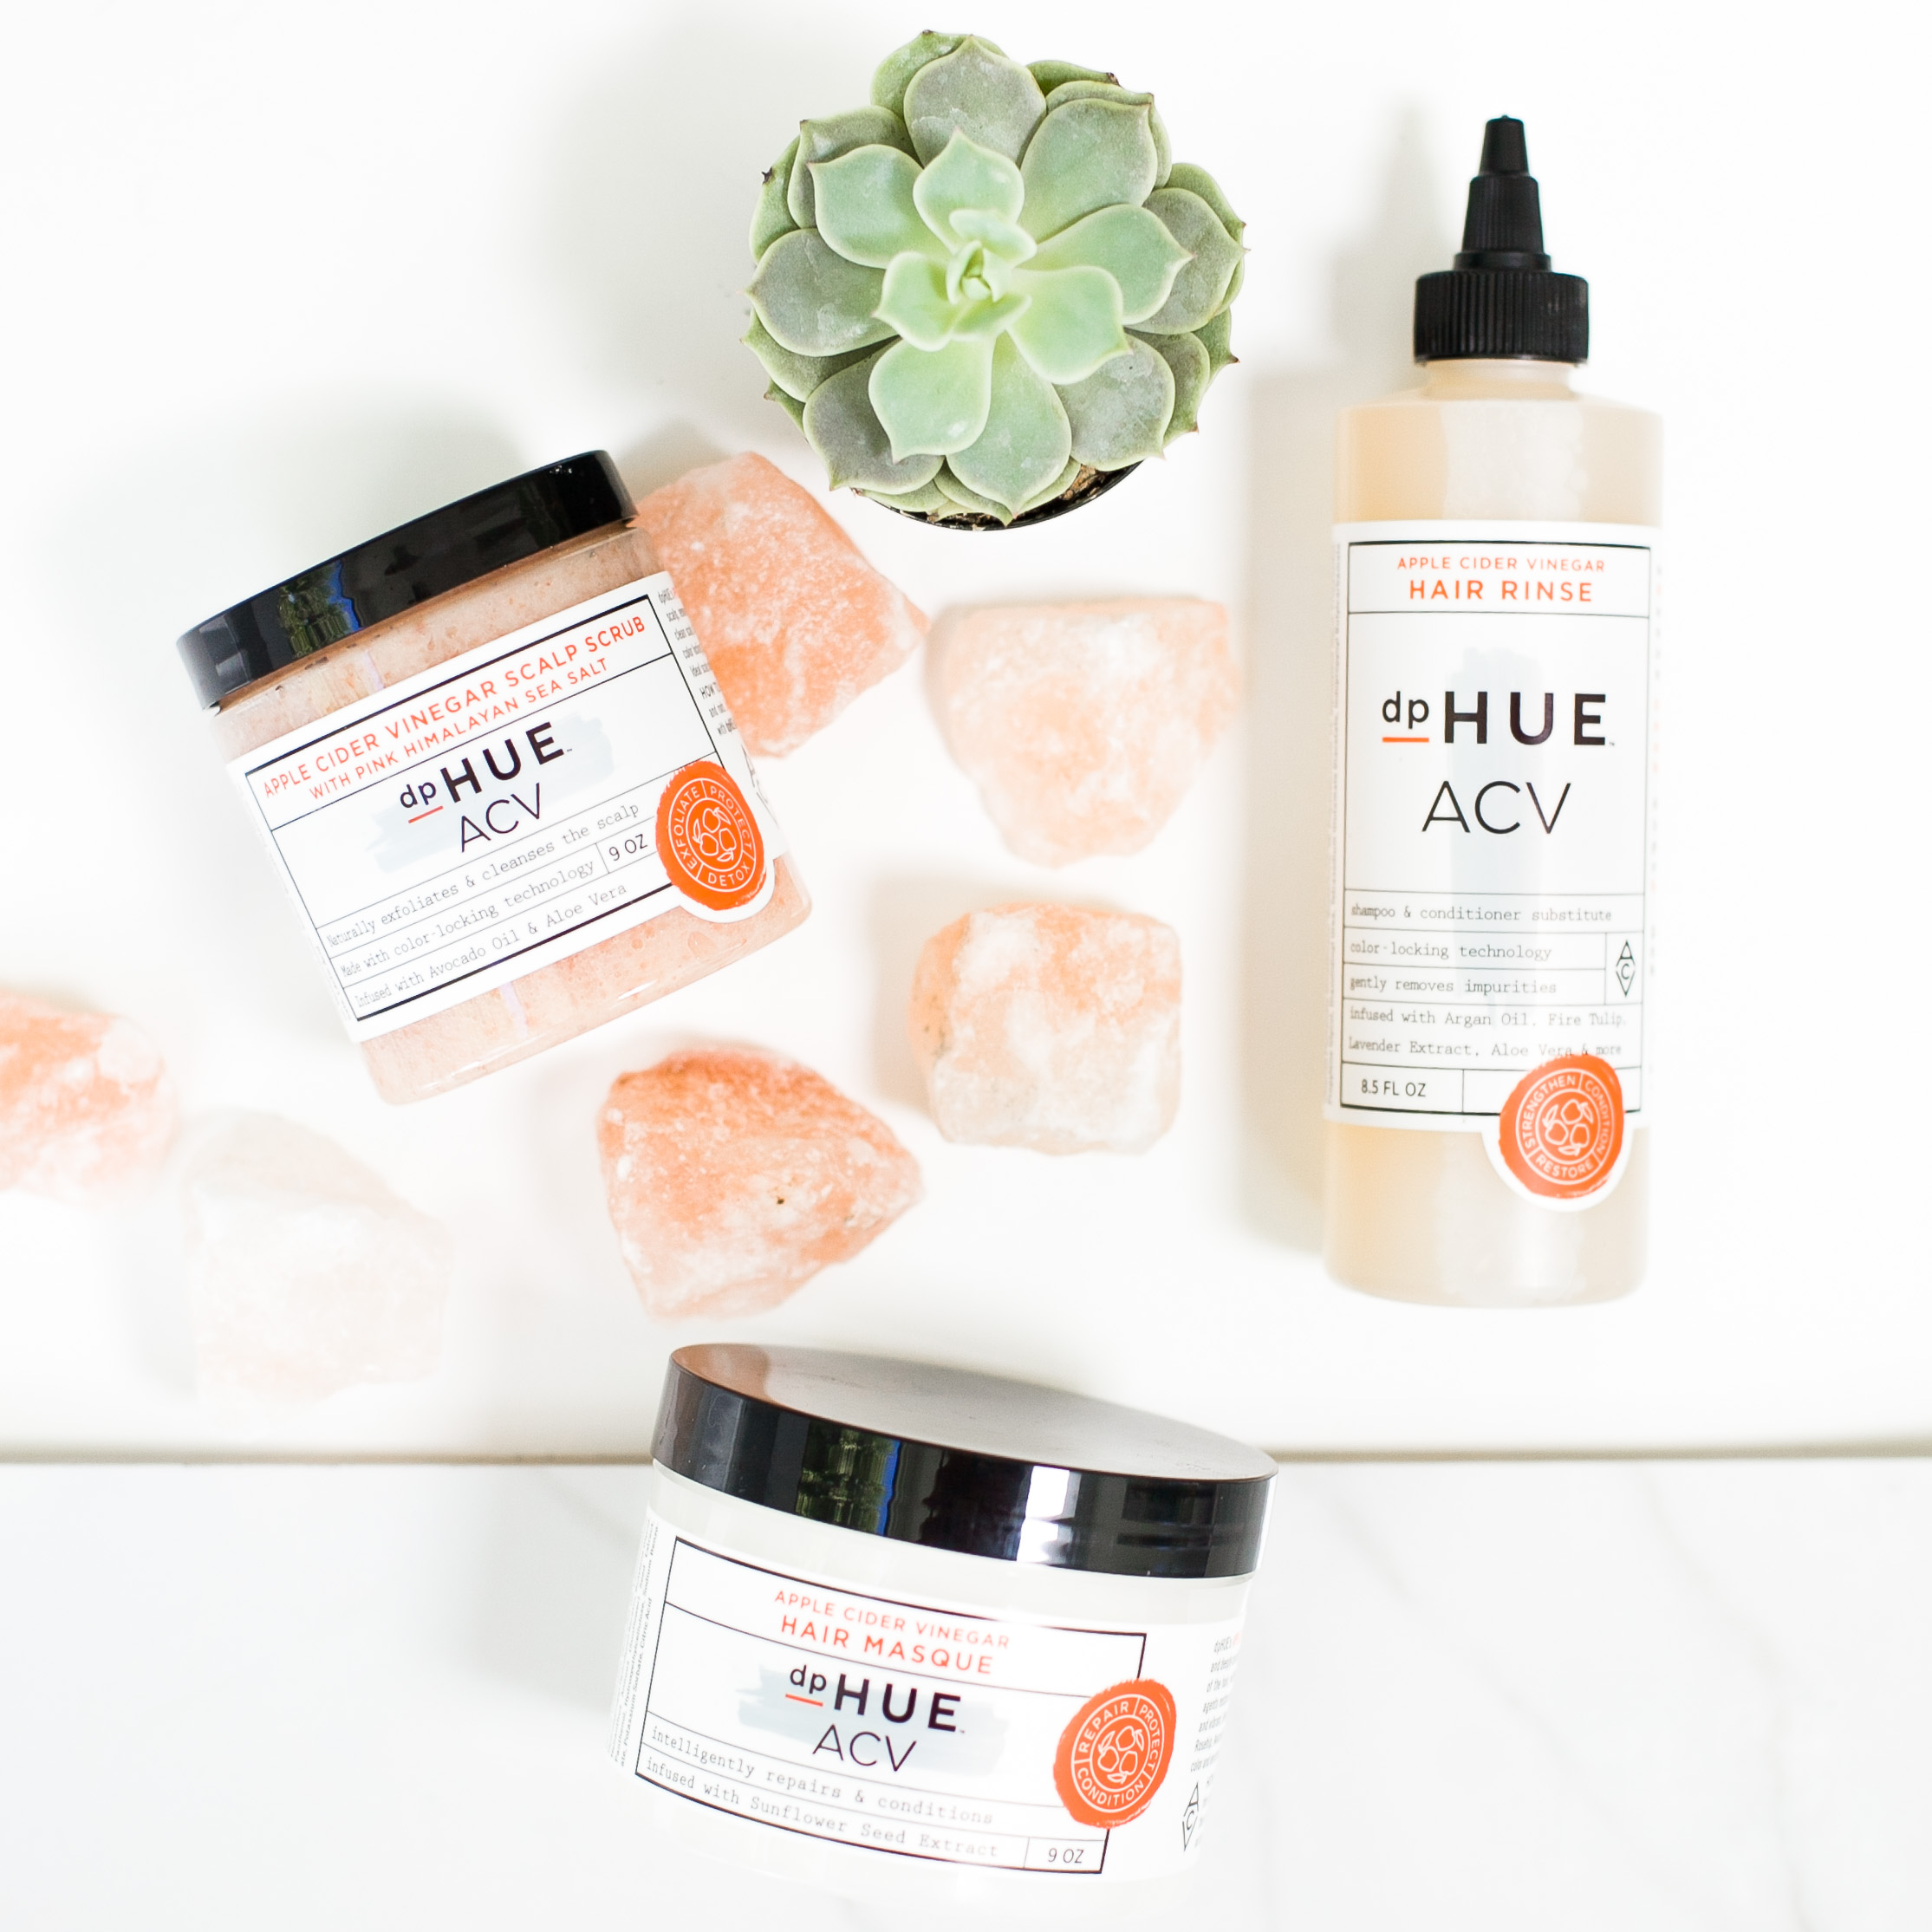 ACV with DP HUE hair products - scapl scrub, hair rinse and hair masque